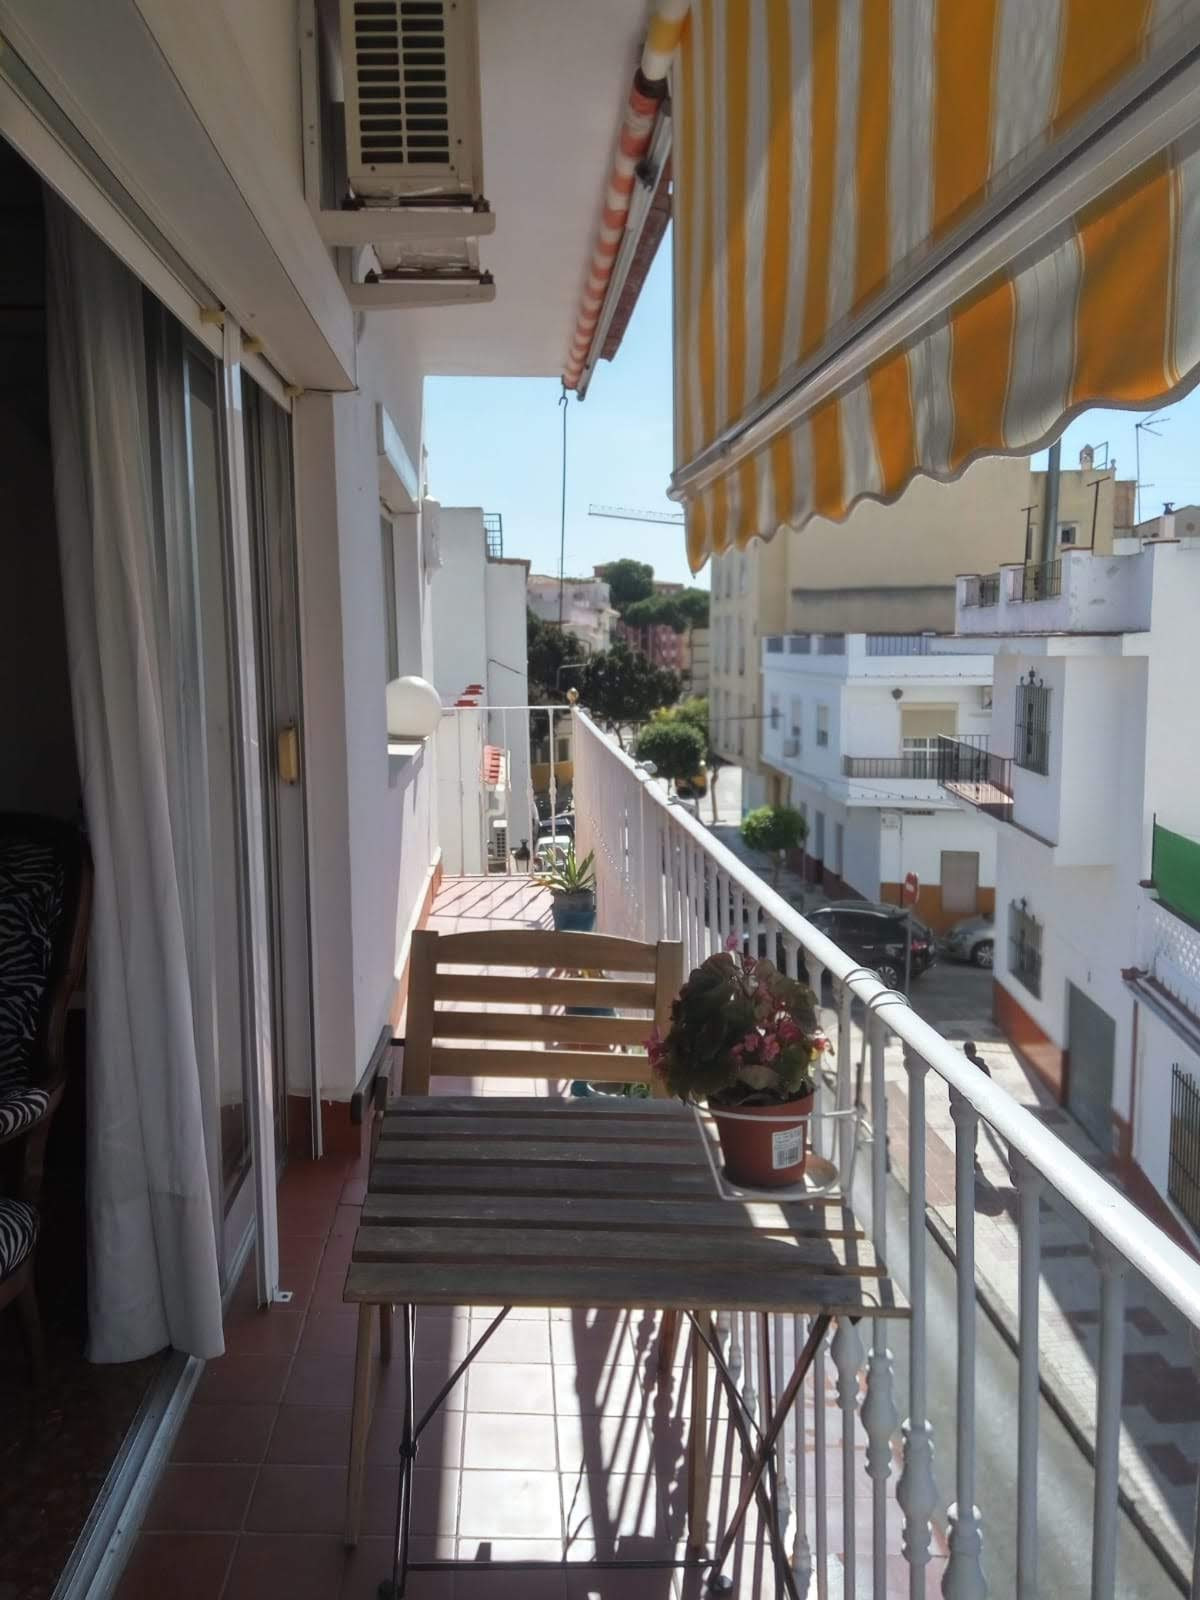 BEAUTIFUL DUPLEX IN THE CENTER OF TORREMOLINOS WITH SOUTHEAST ORIENTATION AND VIEWS TO THE MOUNTAIN.,Spain